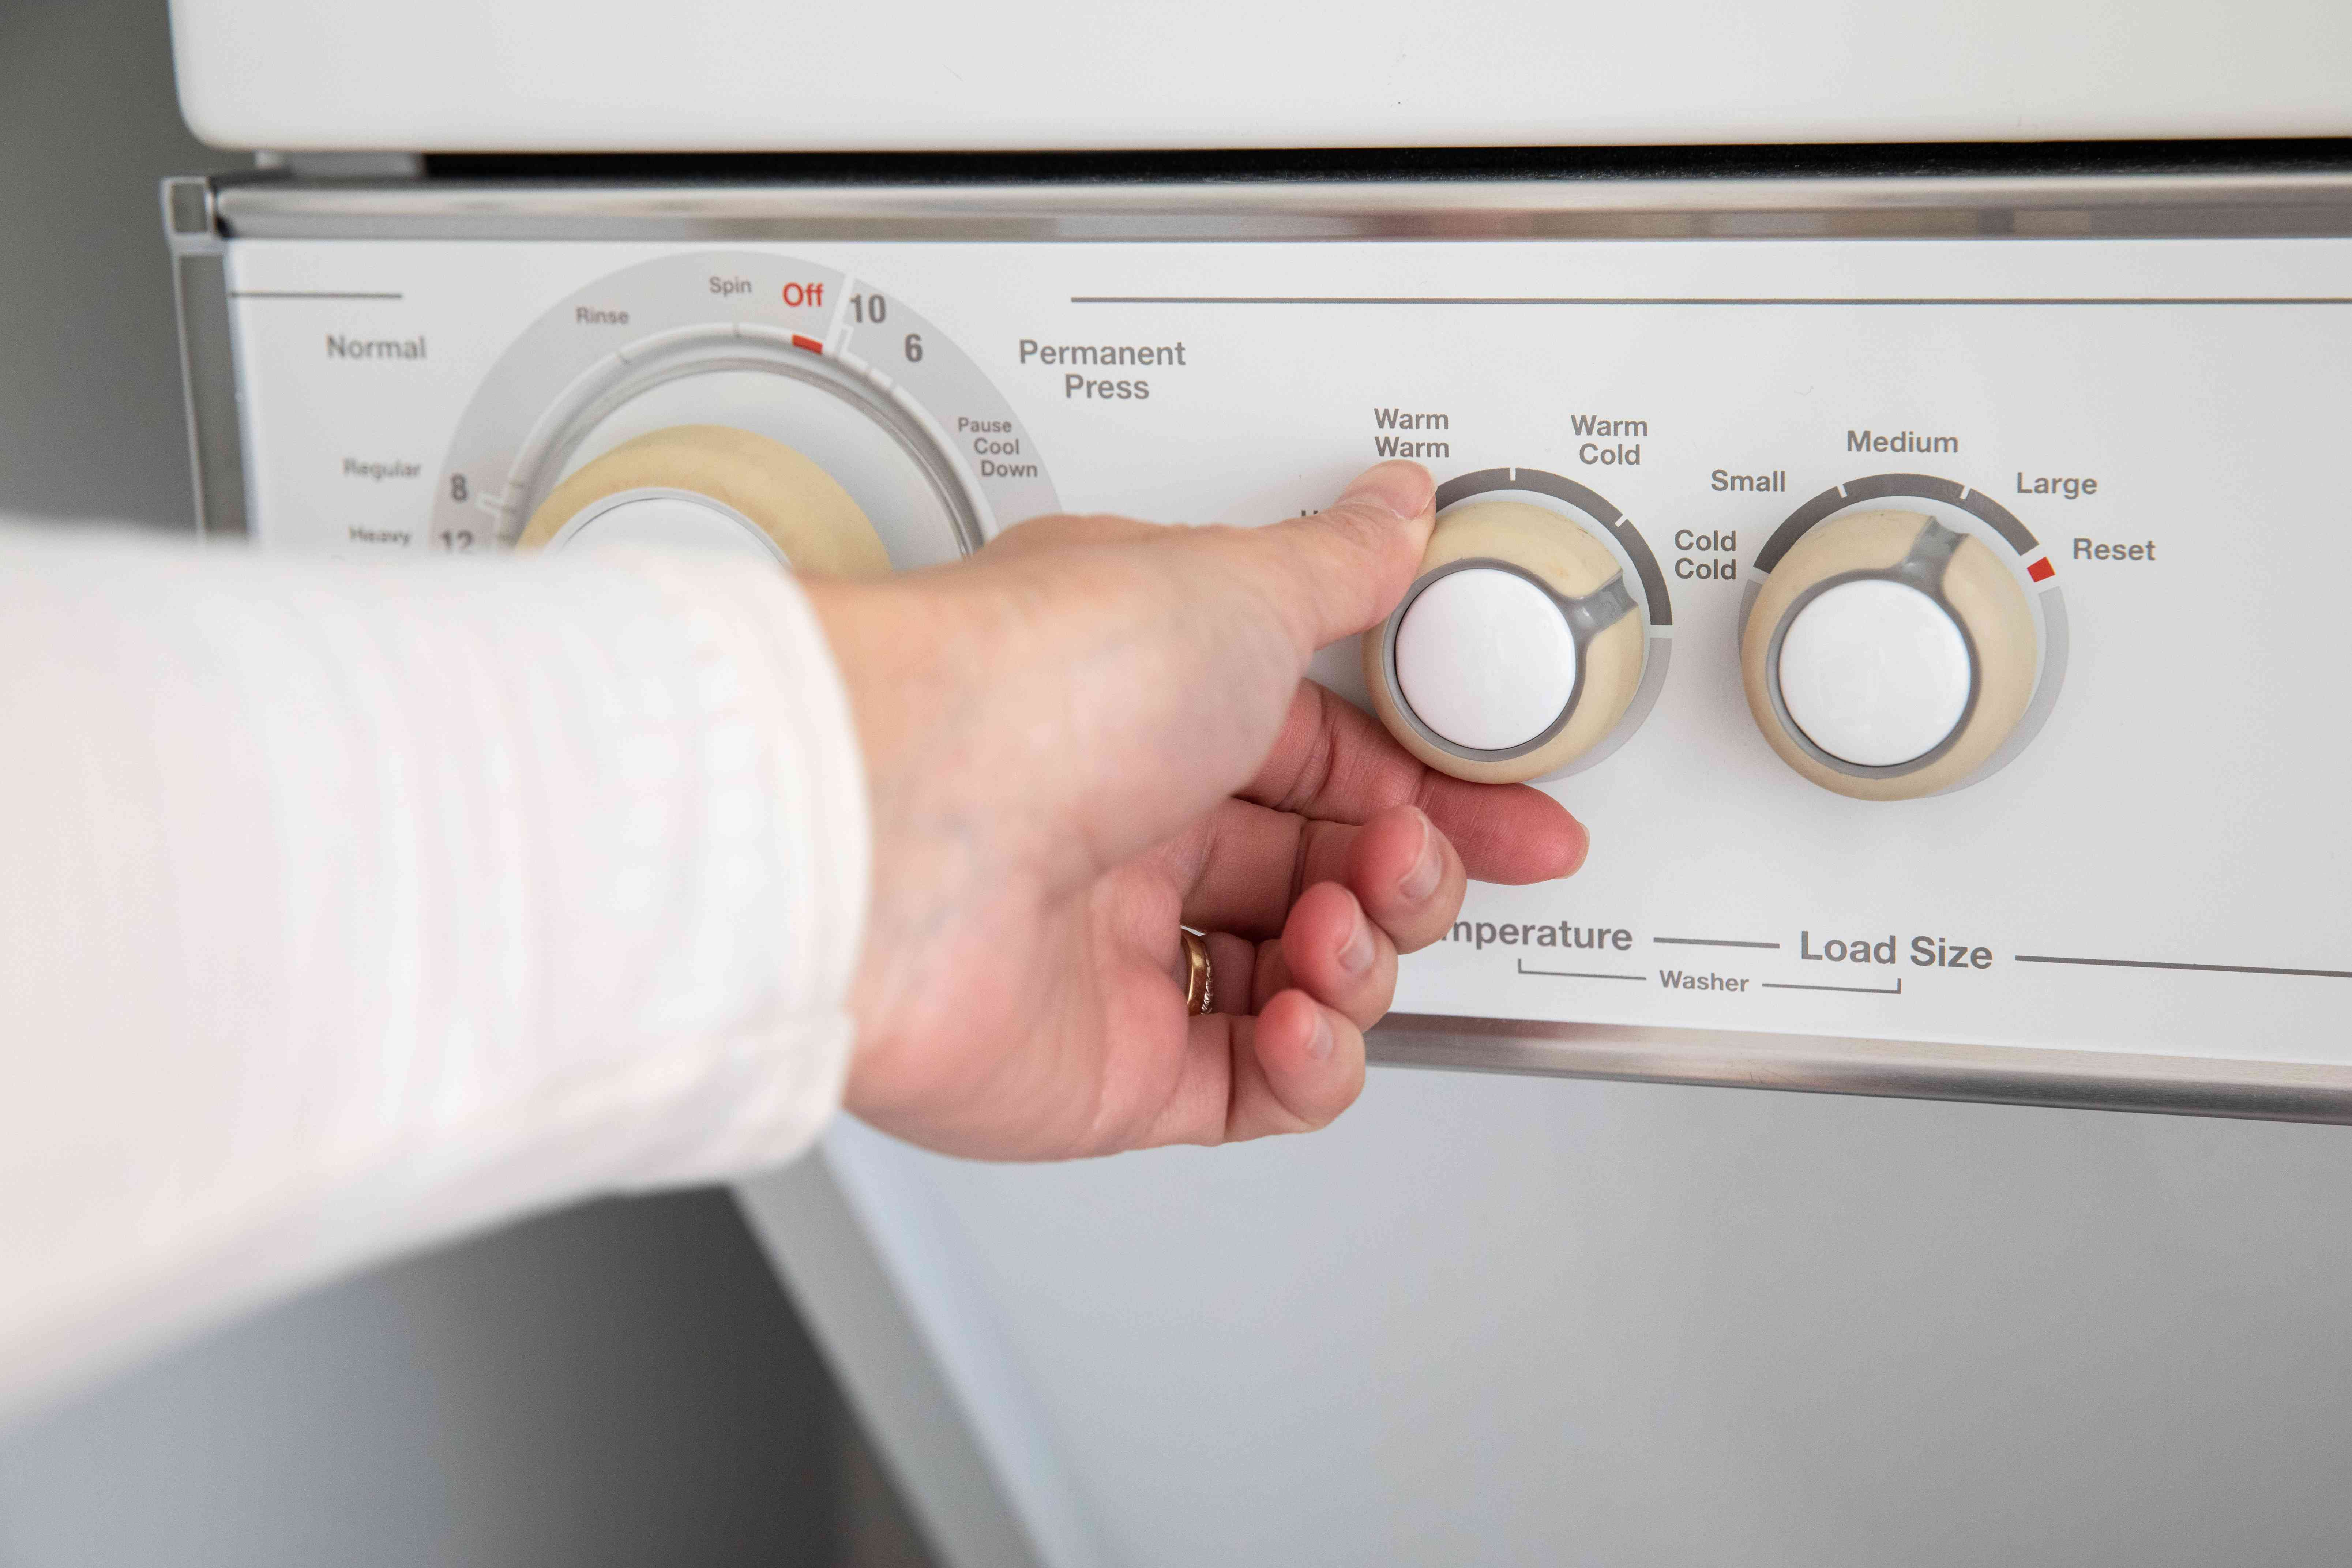 Clothes dryer set to lower temperature